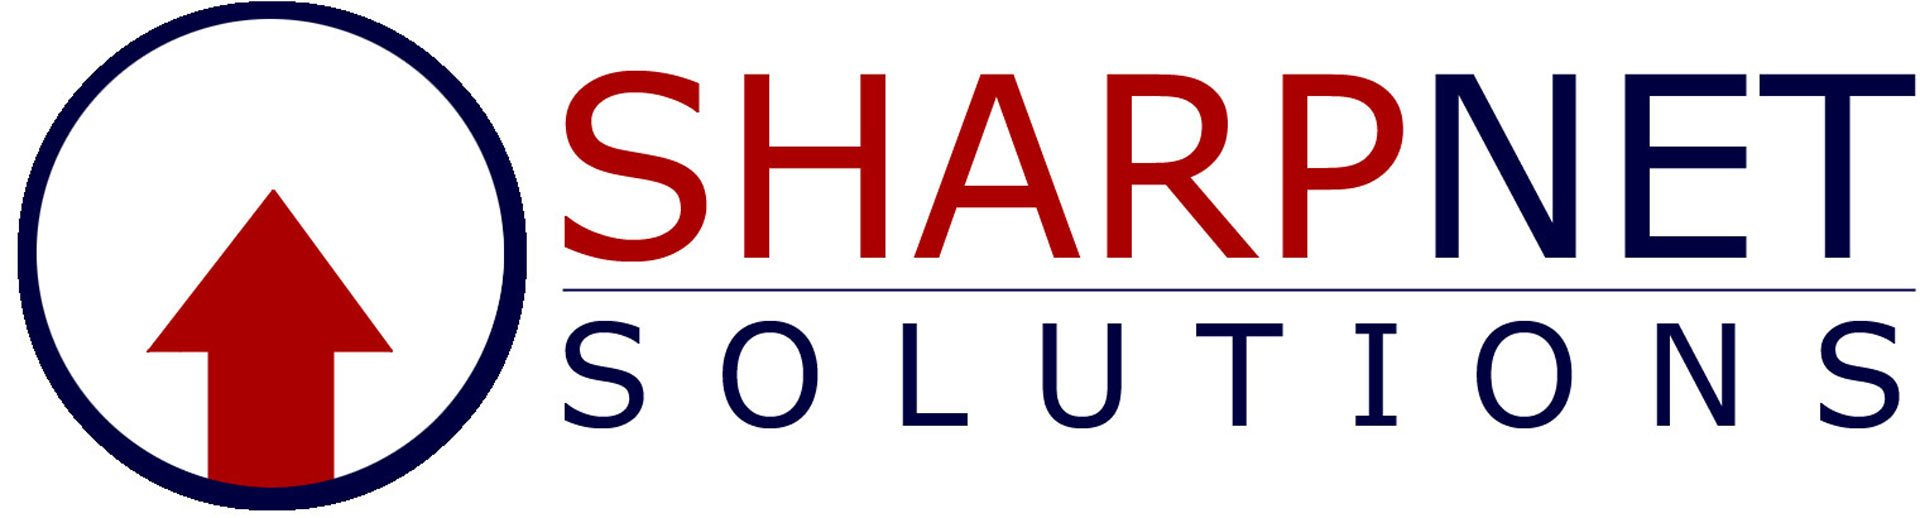 Best Social Media Marketing Agency Logo: SharpNet